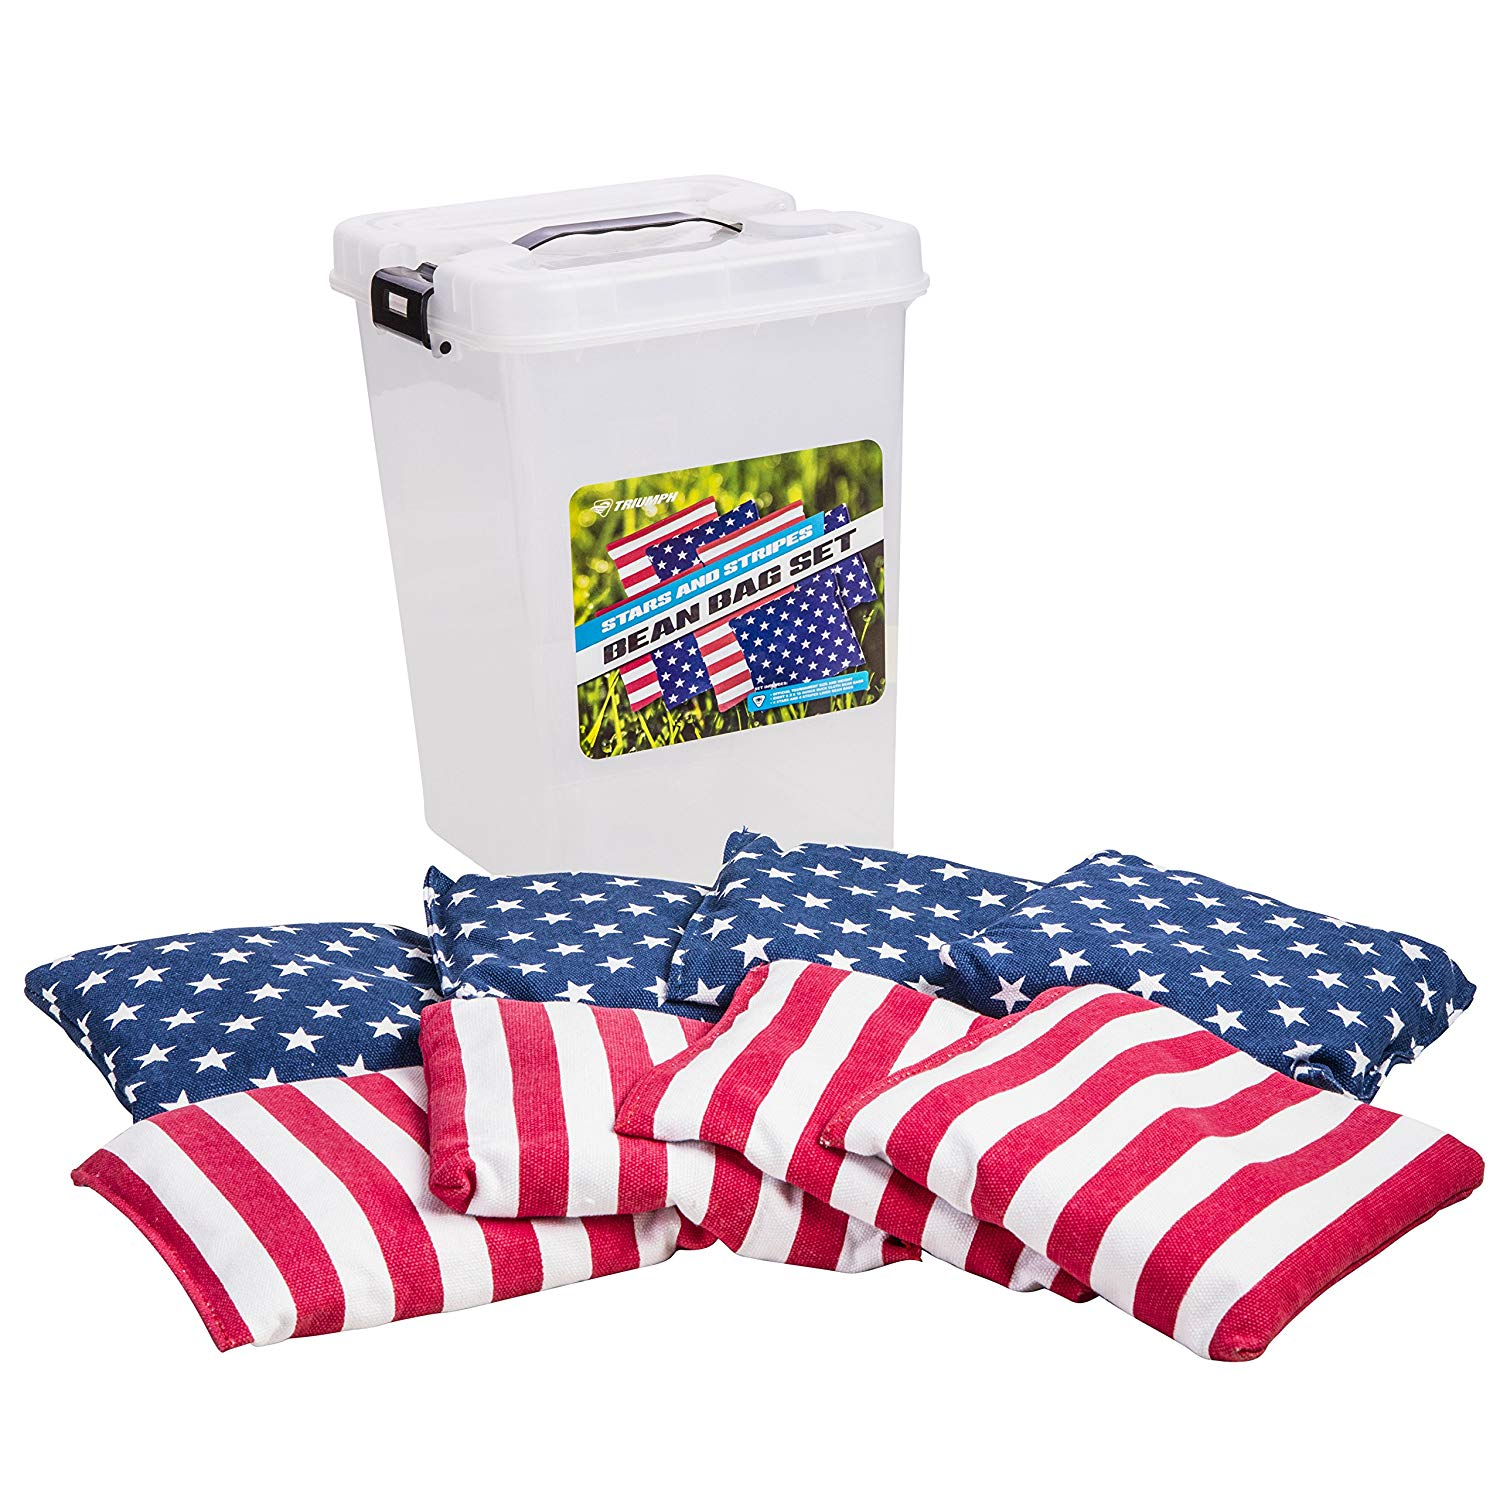 Triumph Patriotic Stars Stripes 16 oz. Replacement Bean Bag Set Includes 8 Heavy-Duty Cloth Bean Bags